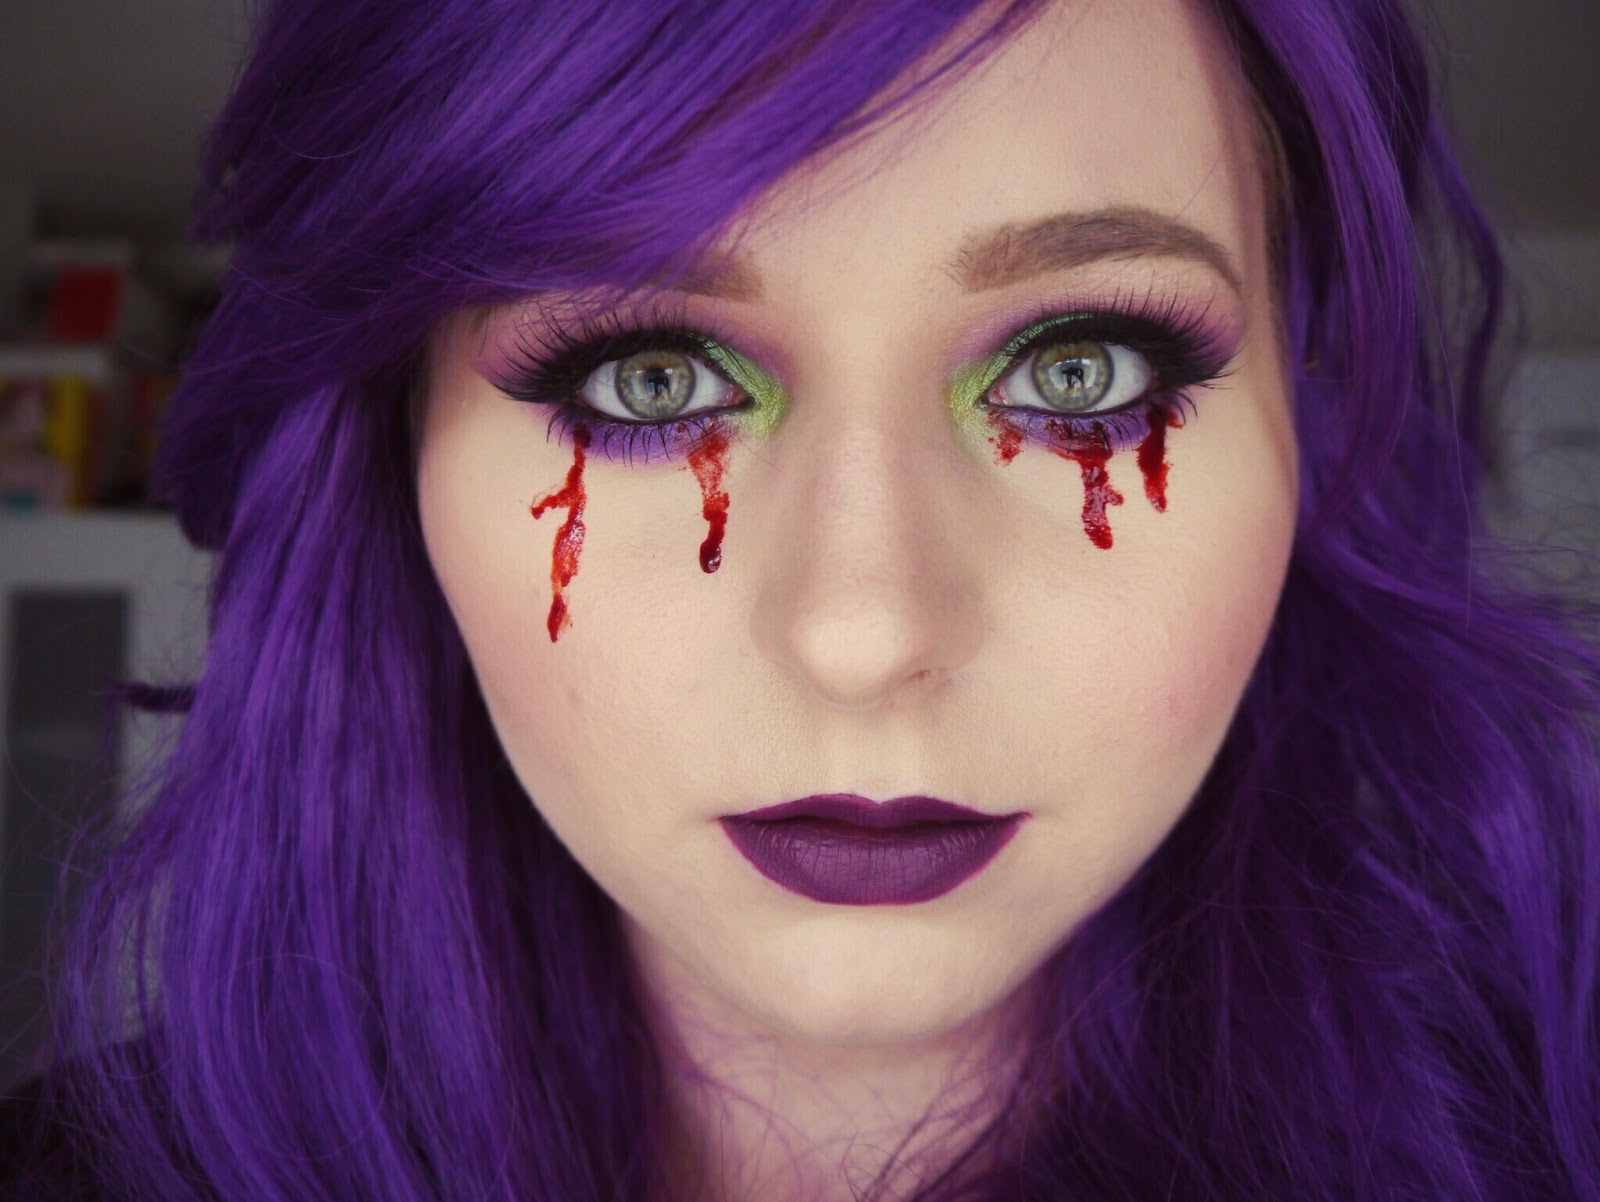 Blogoween Look #1 | The Girl Who Cried Blood